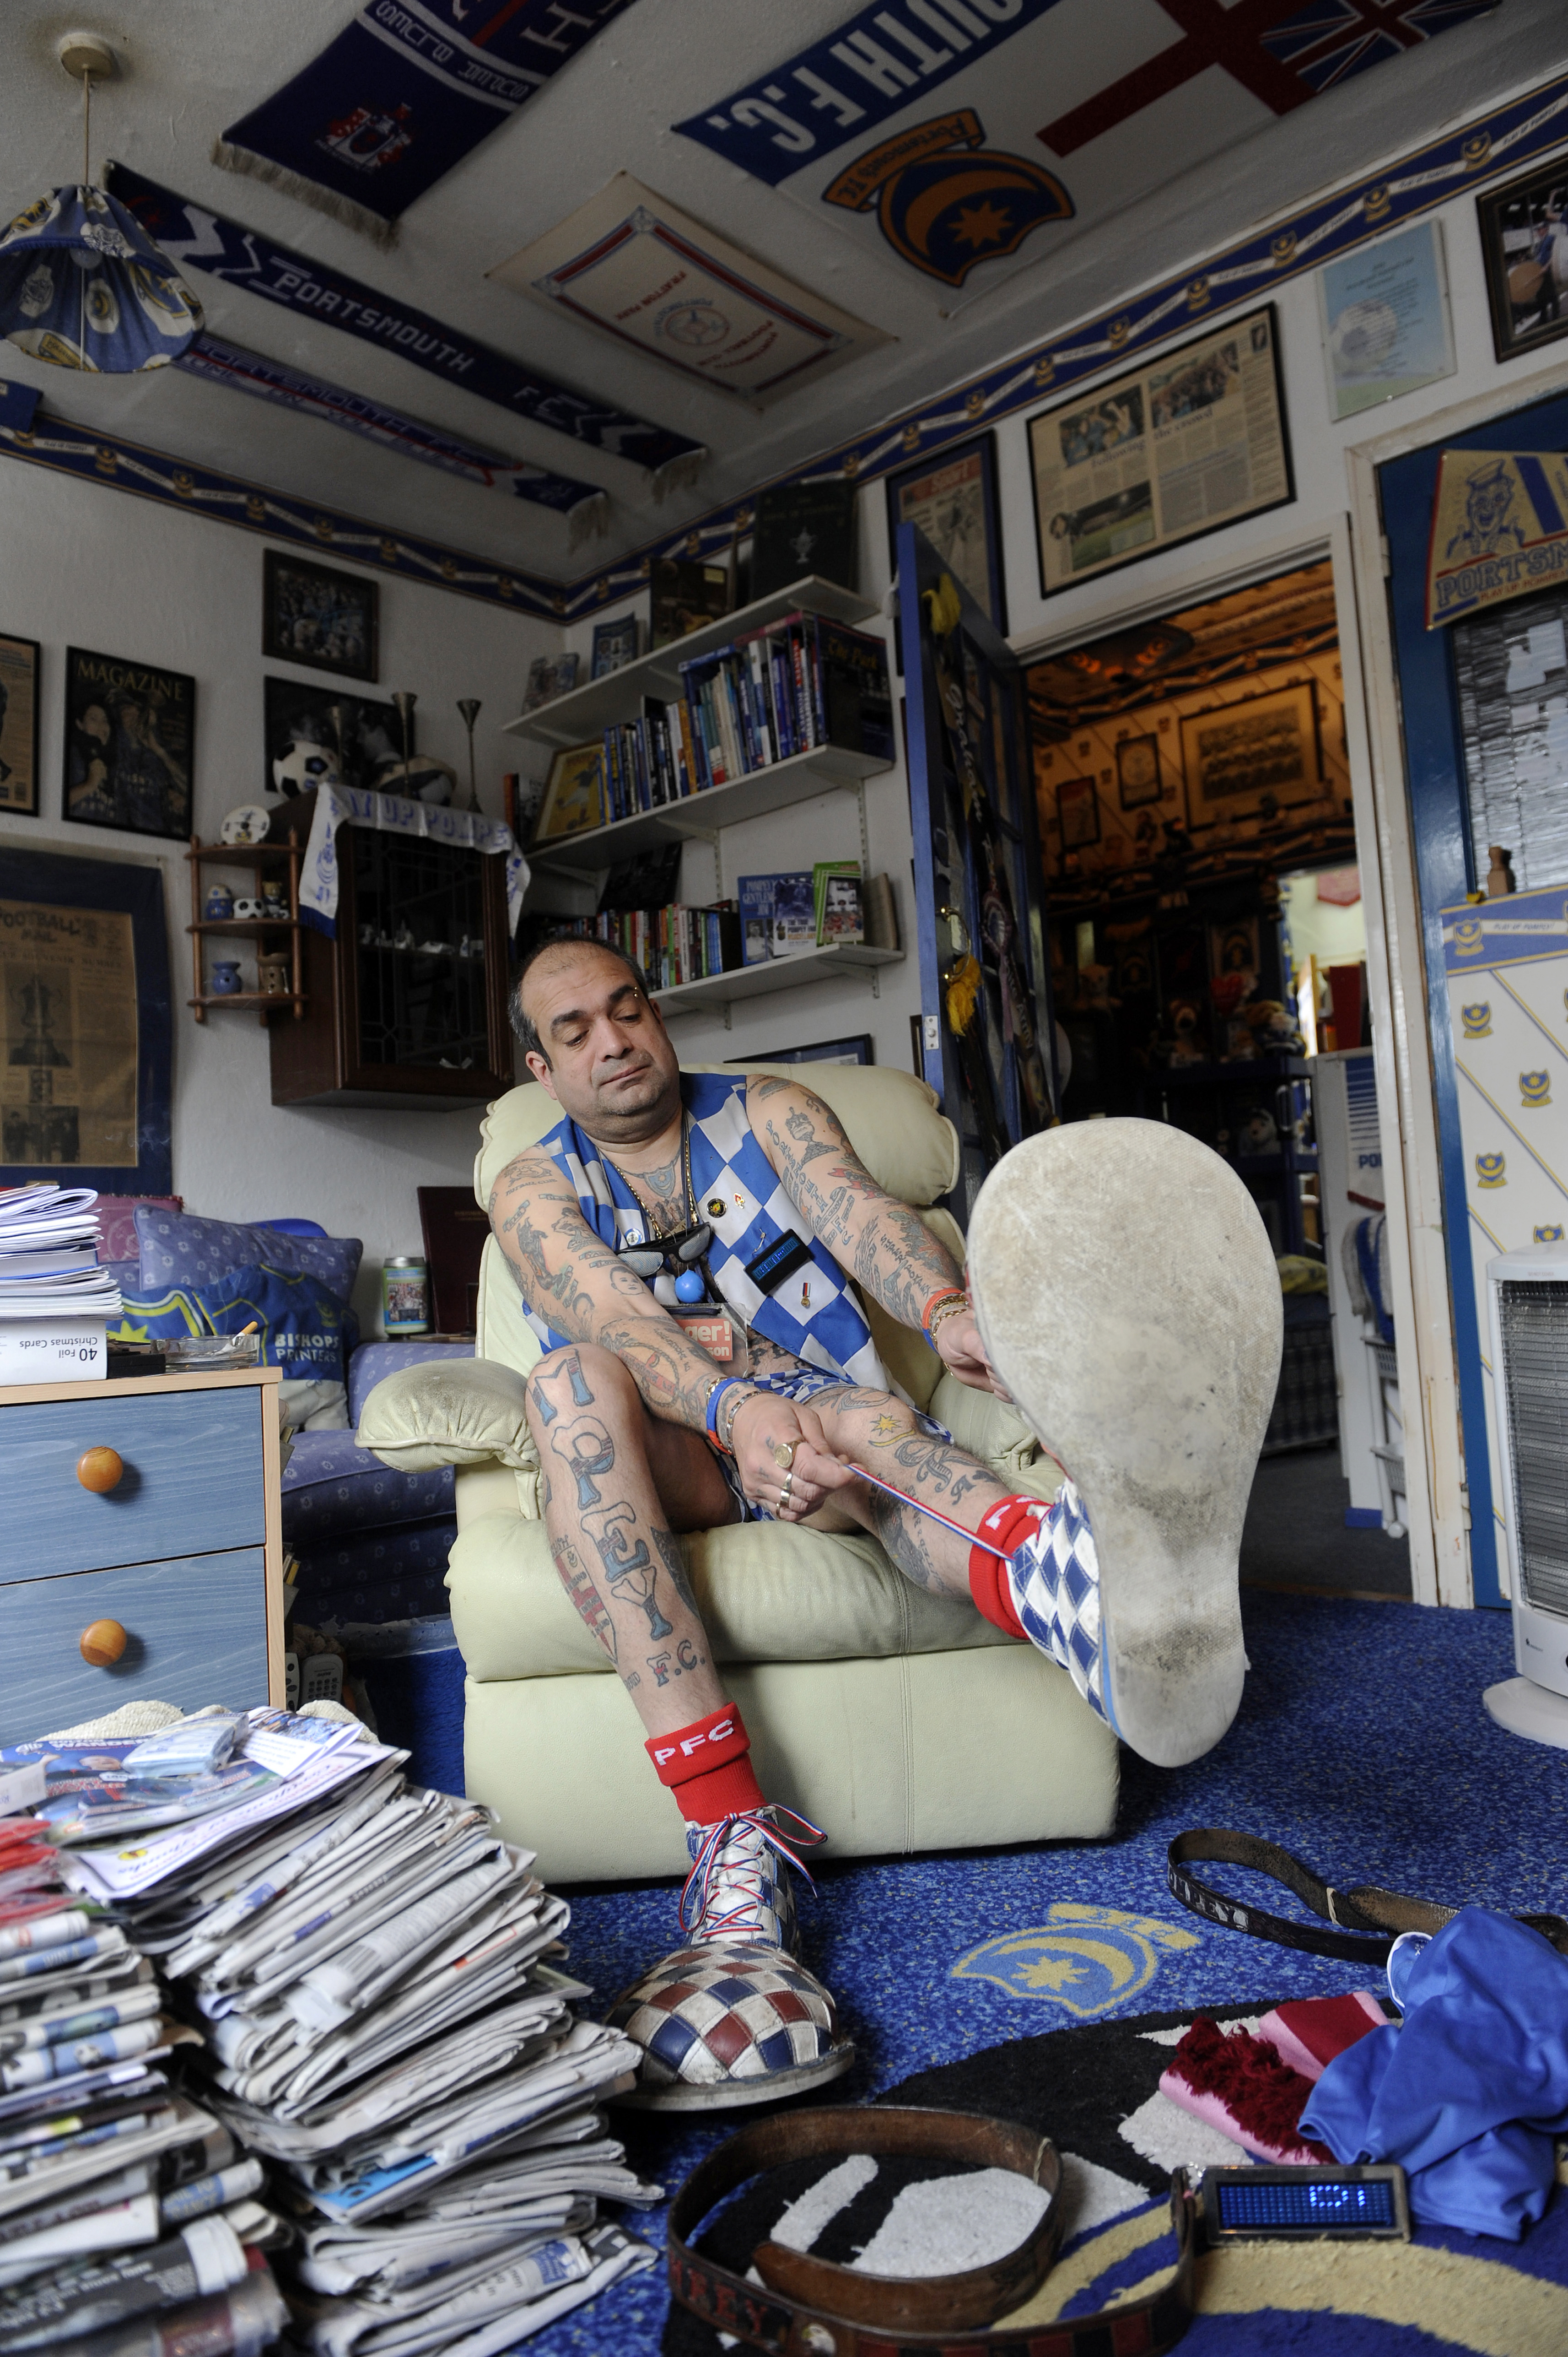 John Westwood poses for a photo in his home in Portsmouth, England on May 1, 2010. In 1989 John Westwood changed his name to John Anthony Portsmouth Football Club Westwood.  Westwood has over 60 Portsmouth tattoos on his body.